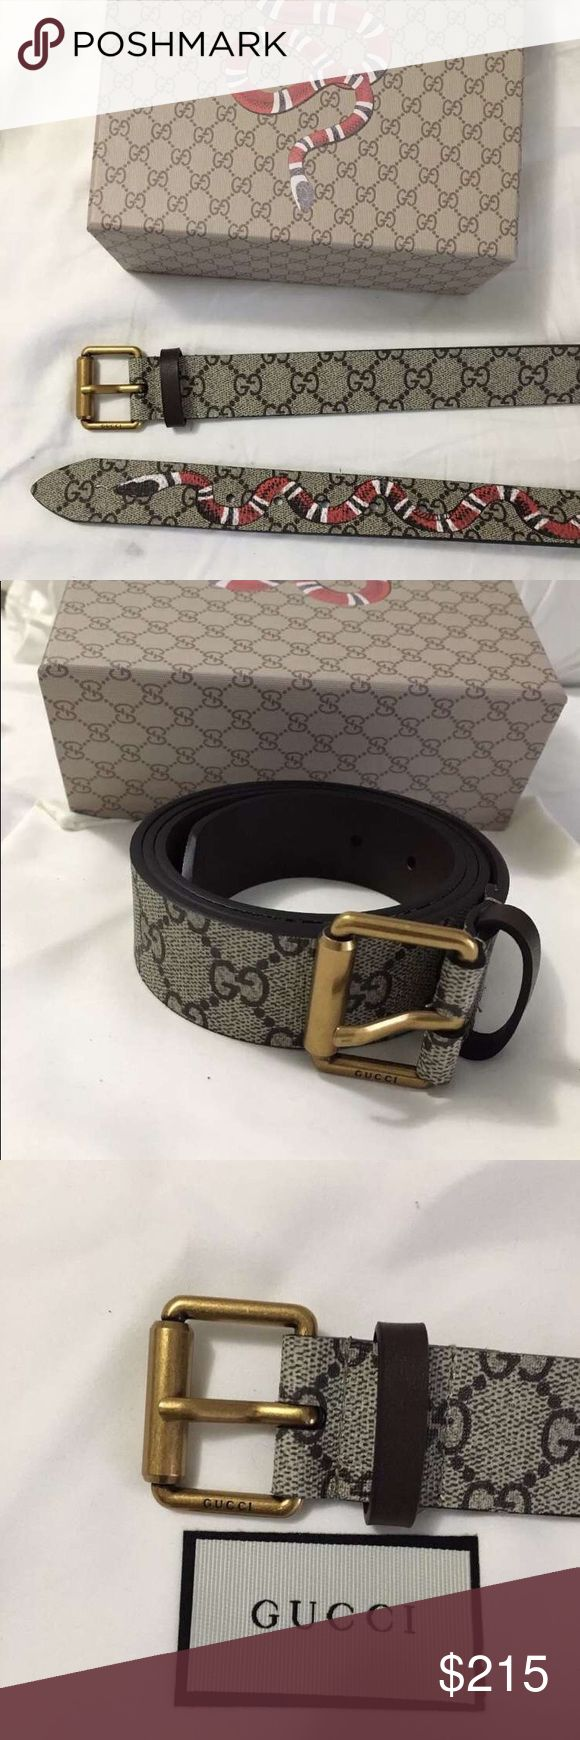 Gucci belt with snake design New, Never worn Gucci Accessories Belts